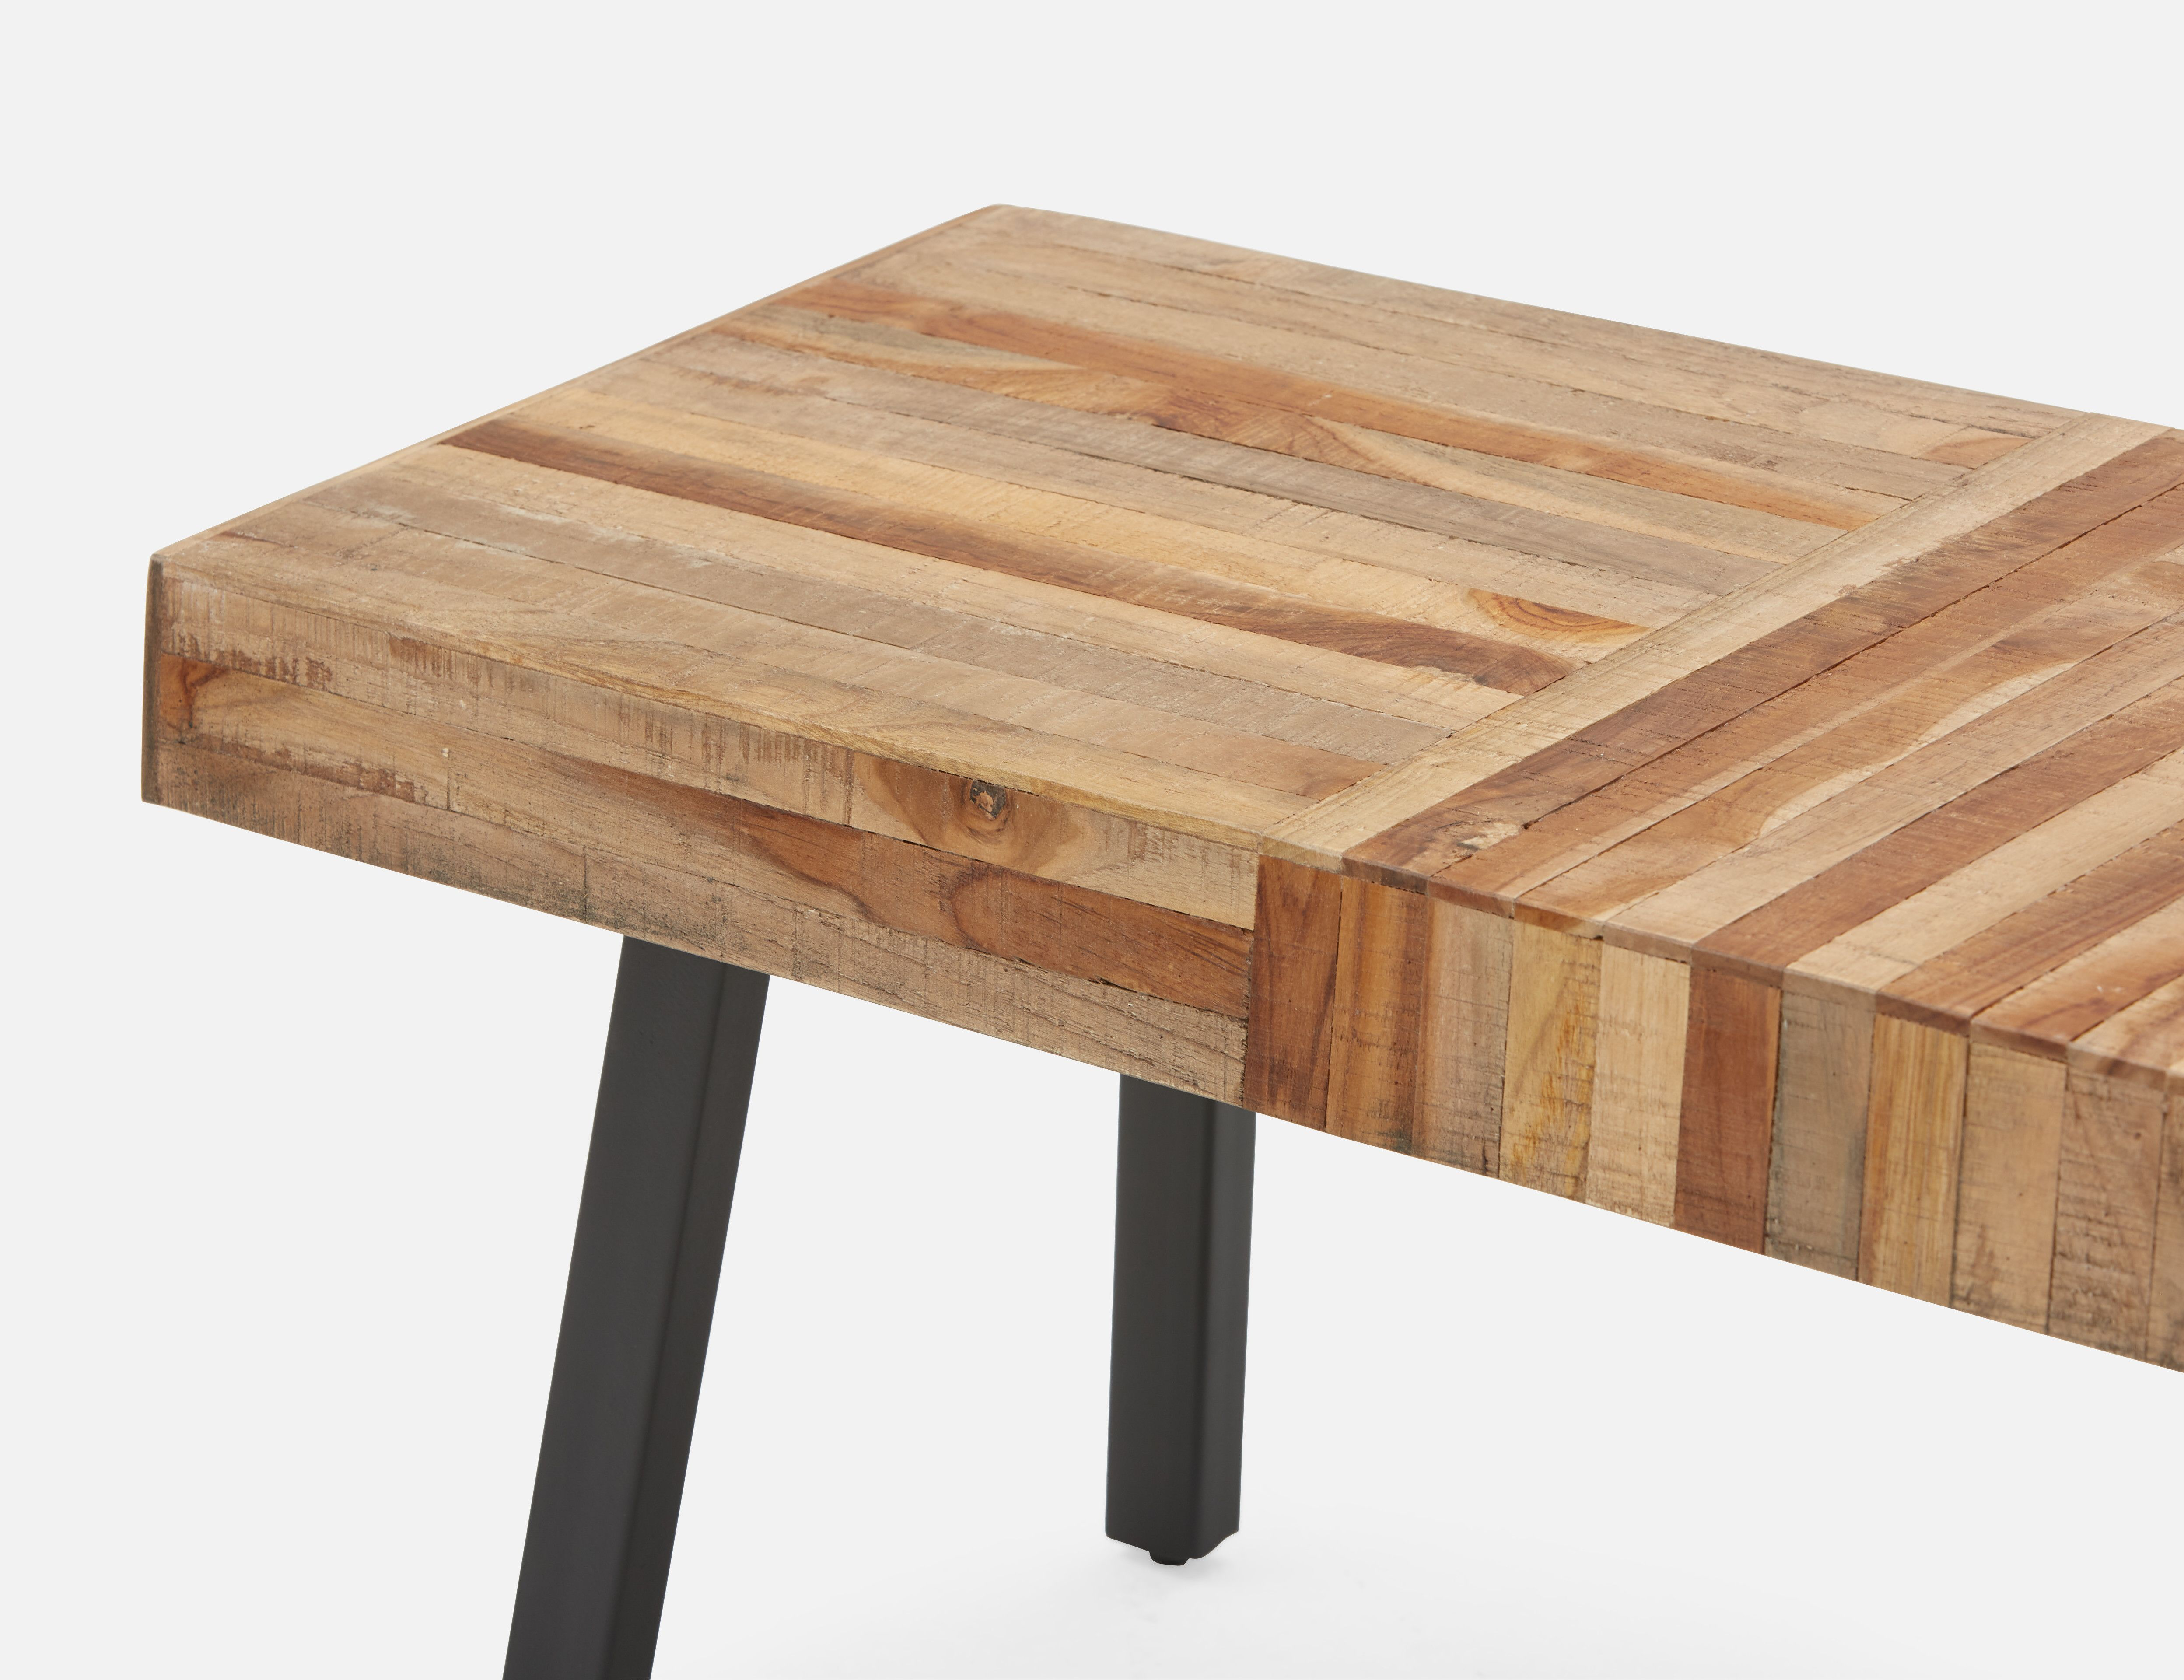 ZAK Natural recycled teak bench | Structube (With images ...